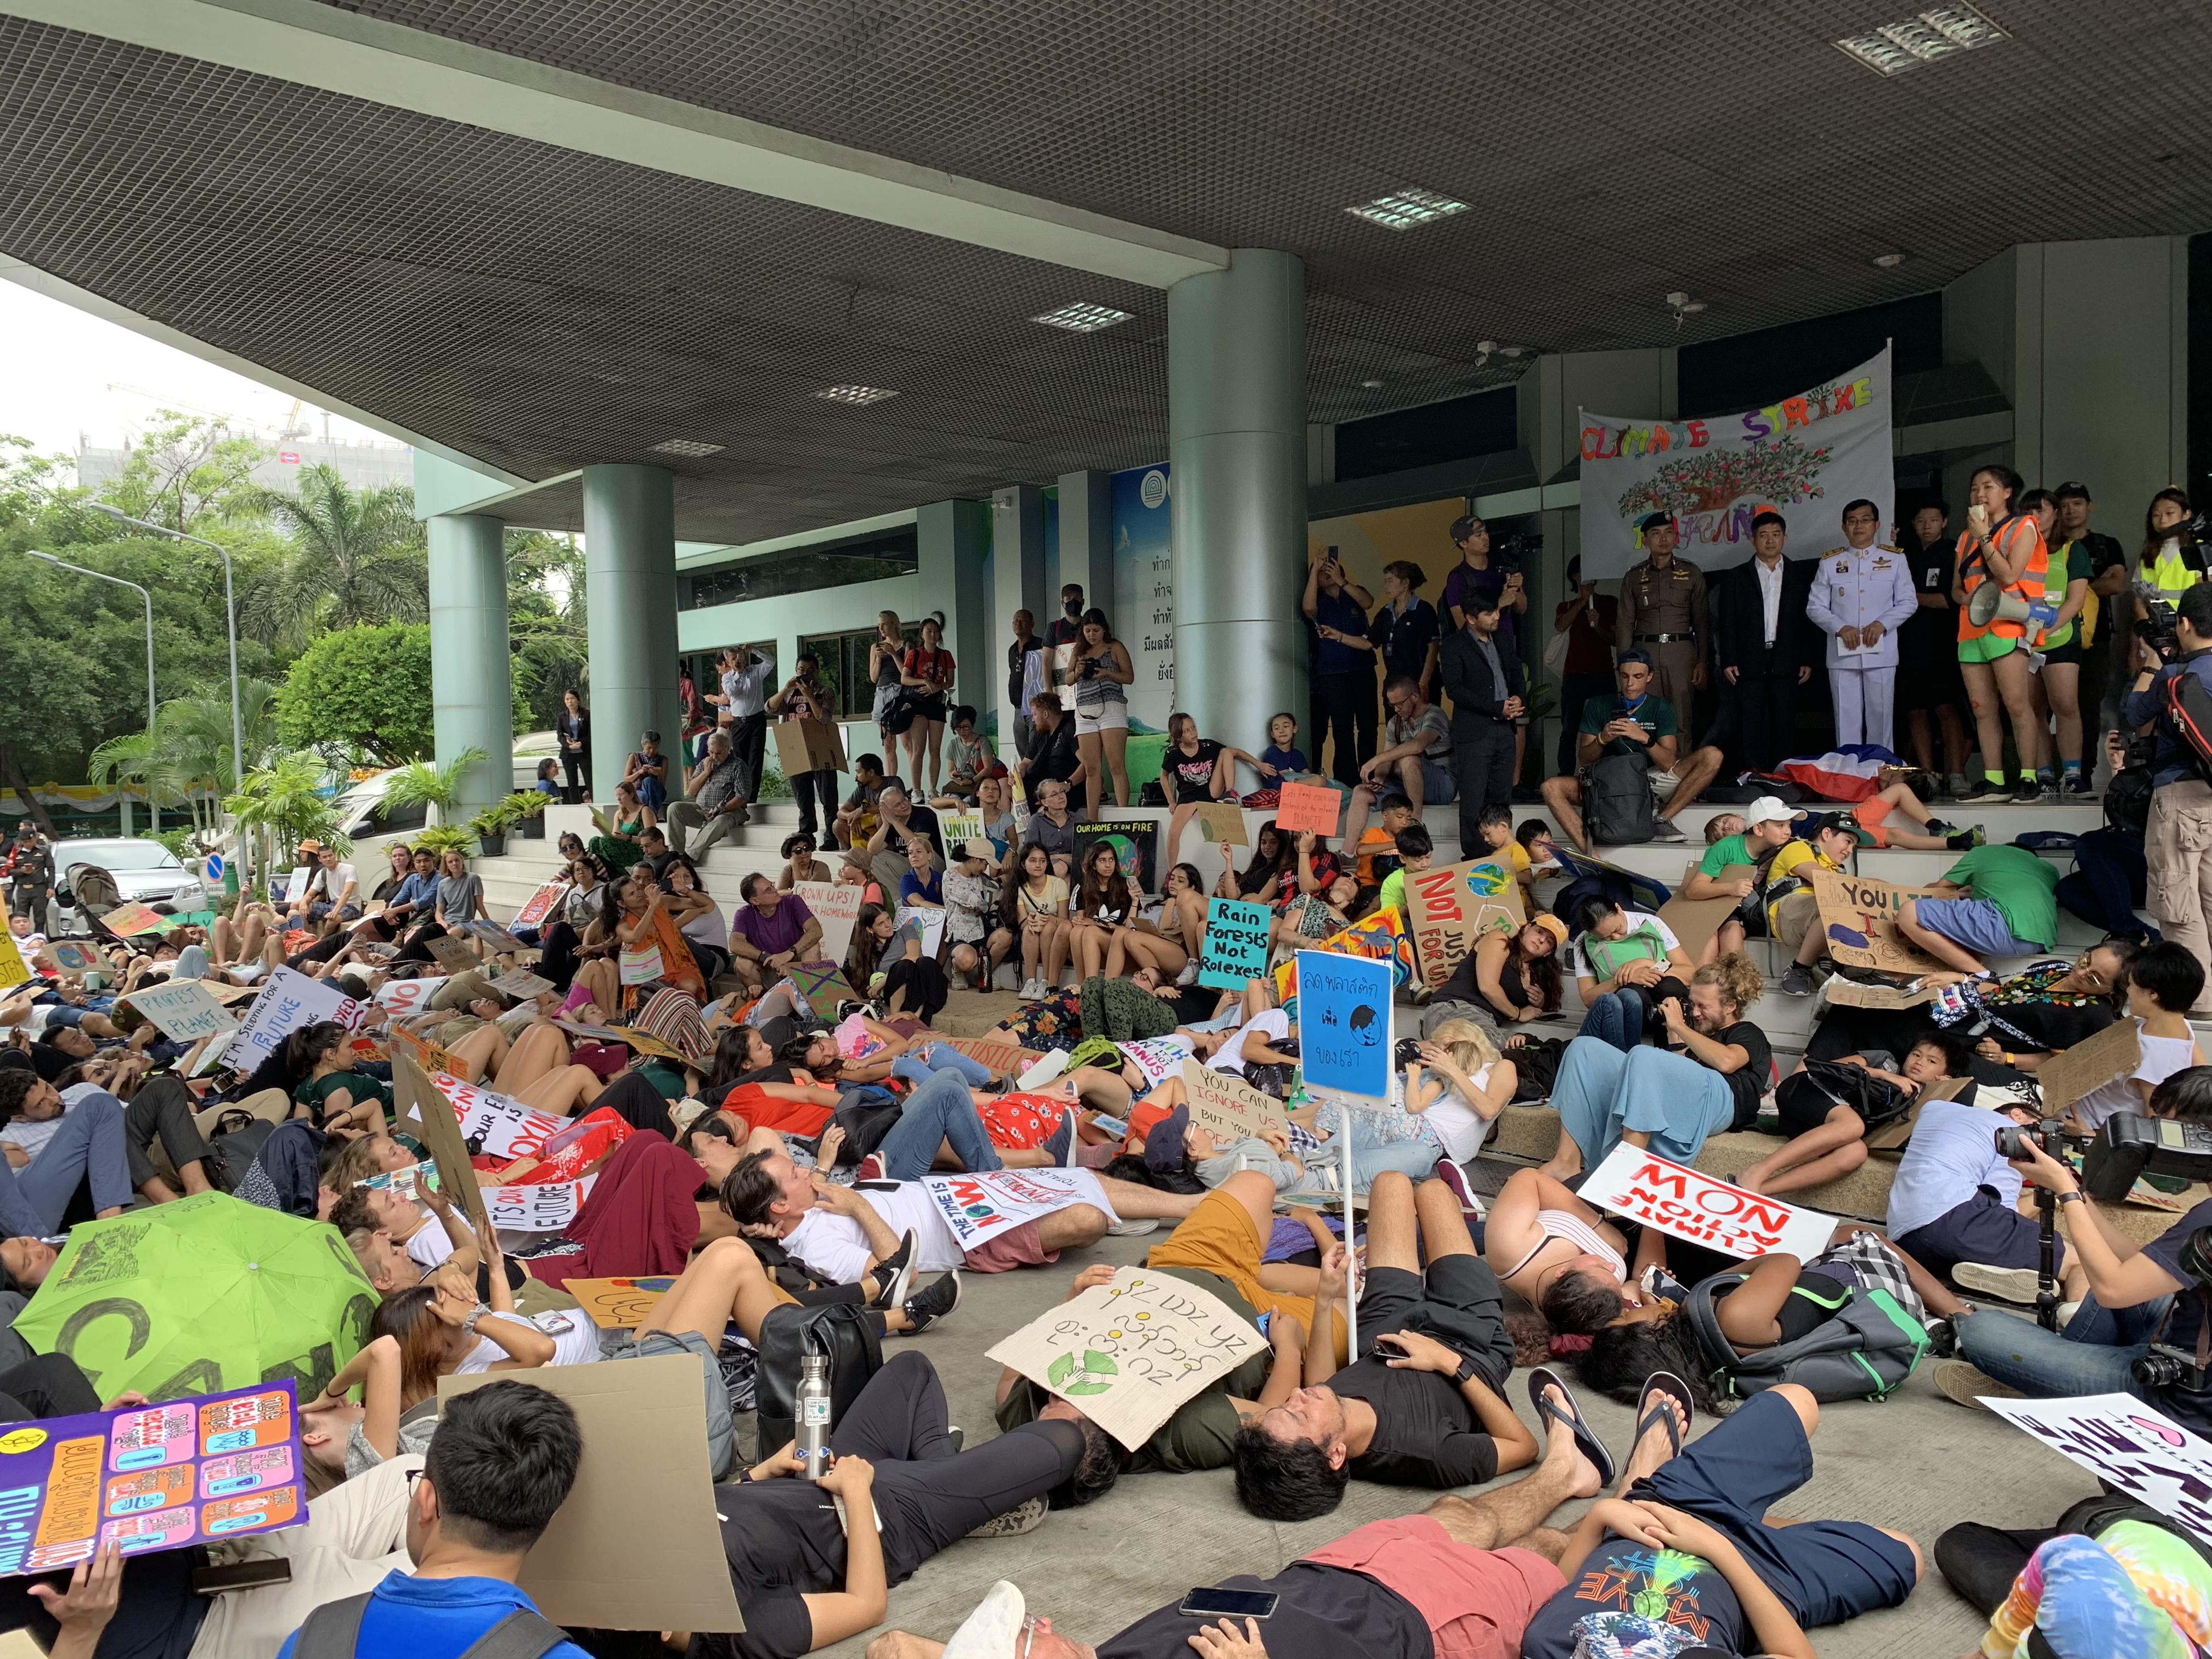 Protesters laying on the ground as a symbol for impacts of climate change.